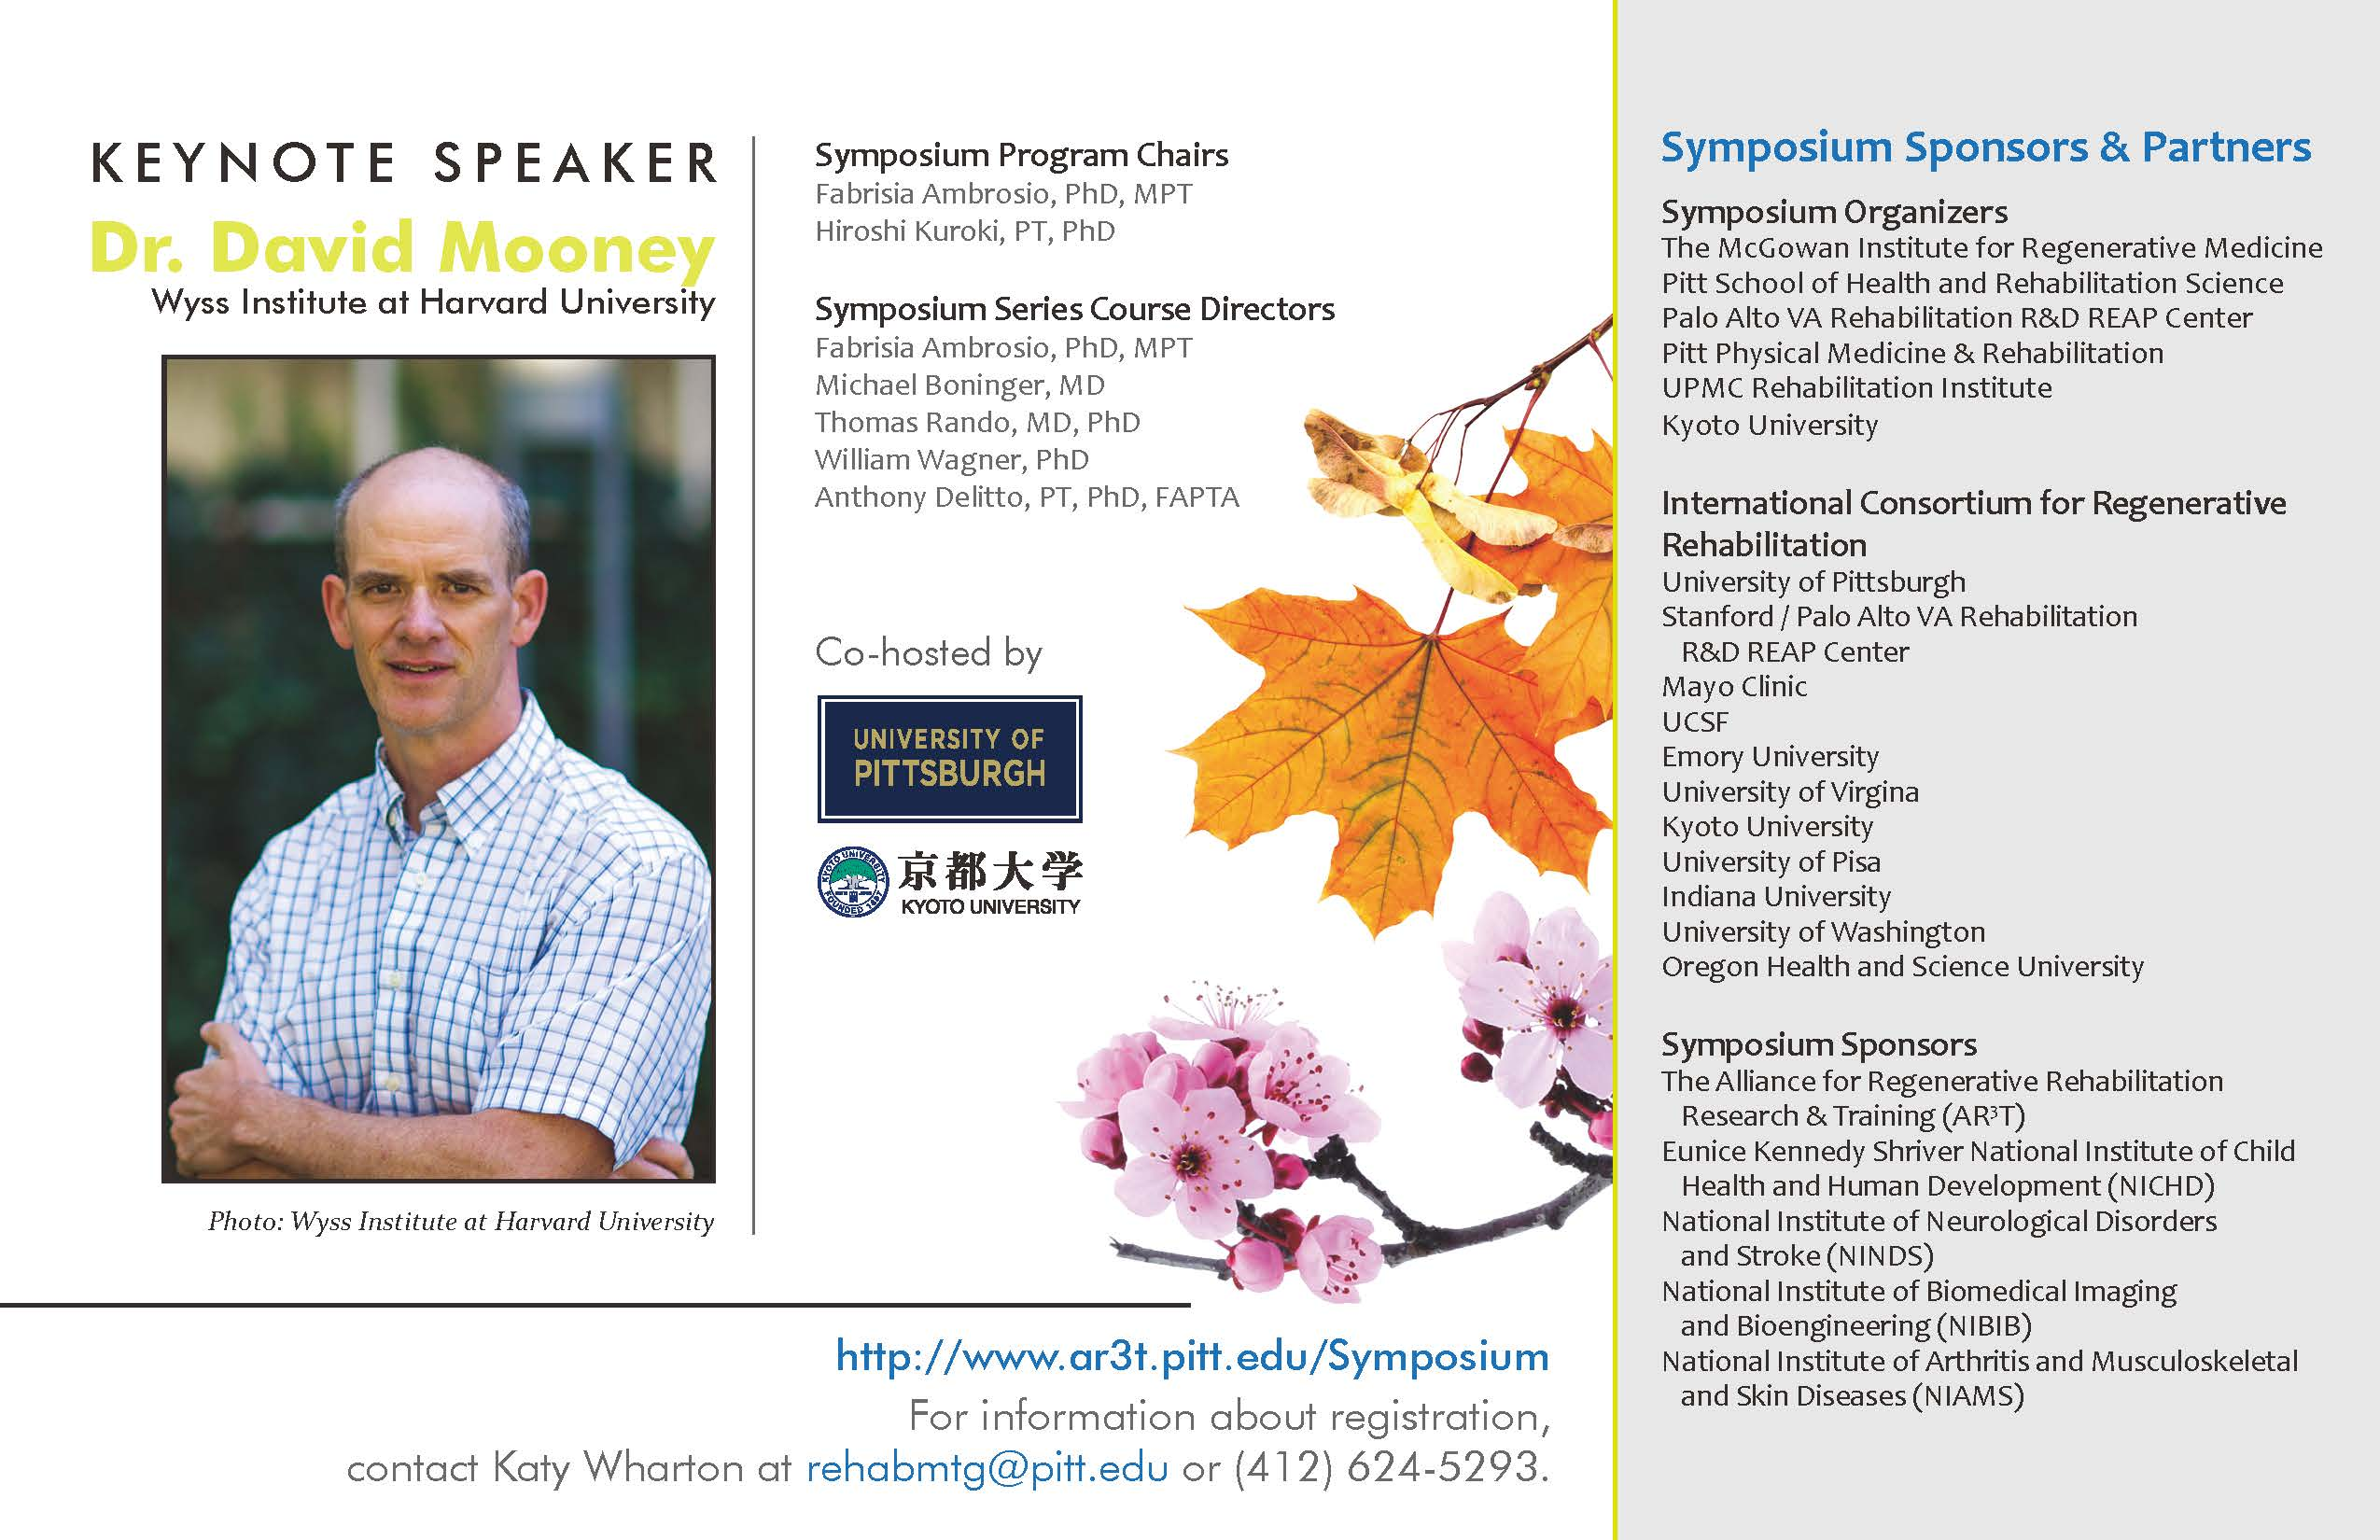 Save the date for the 6th Annual/1st International Symposium on